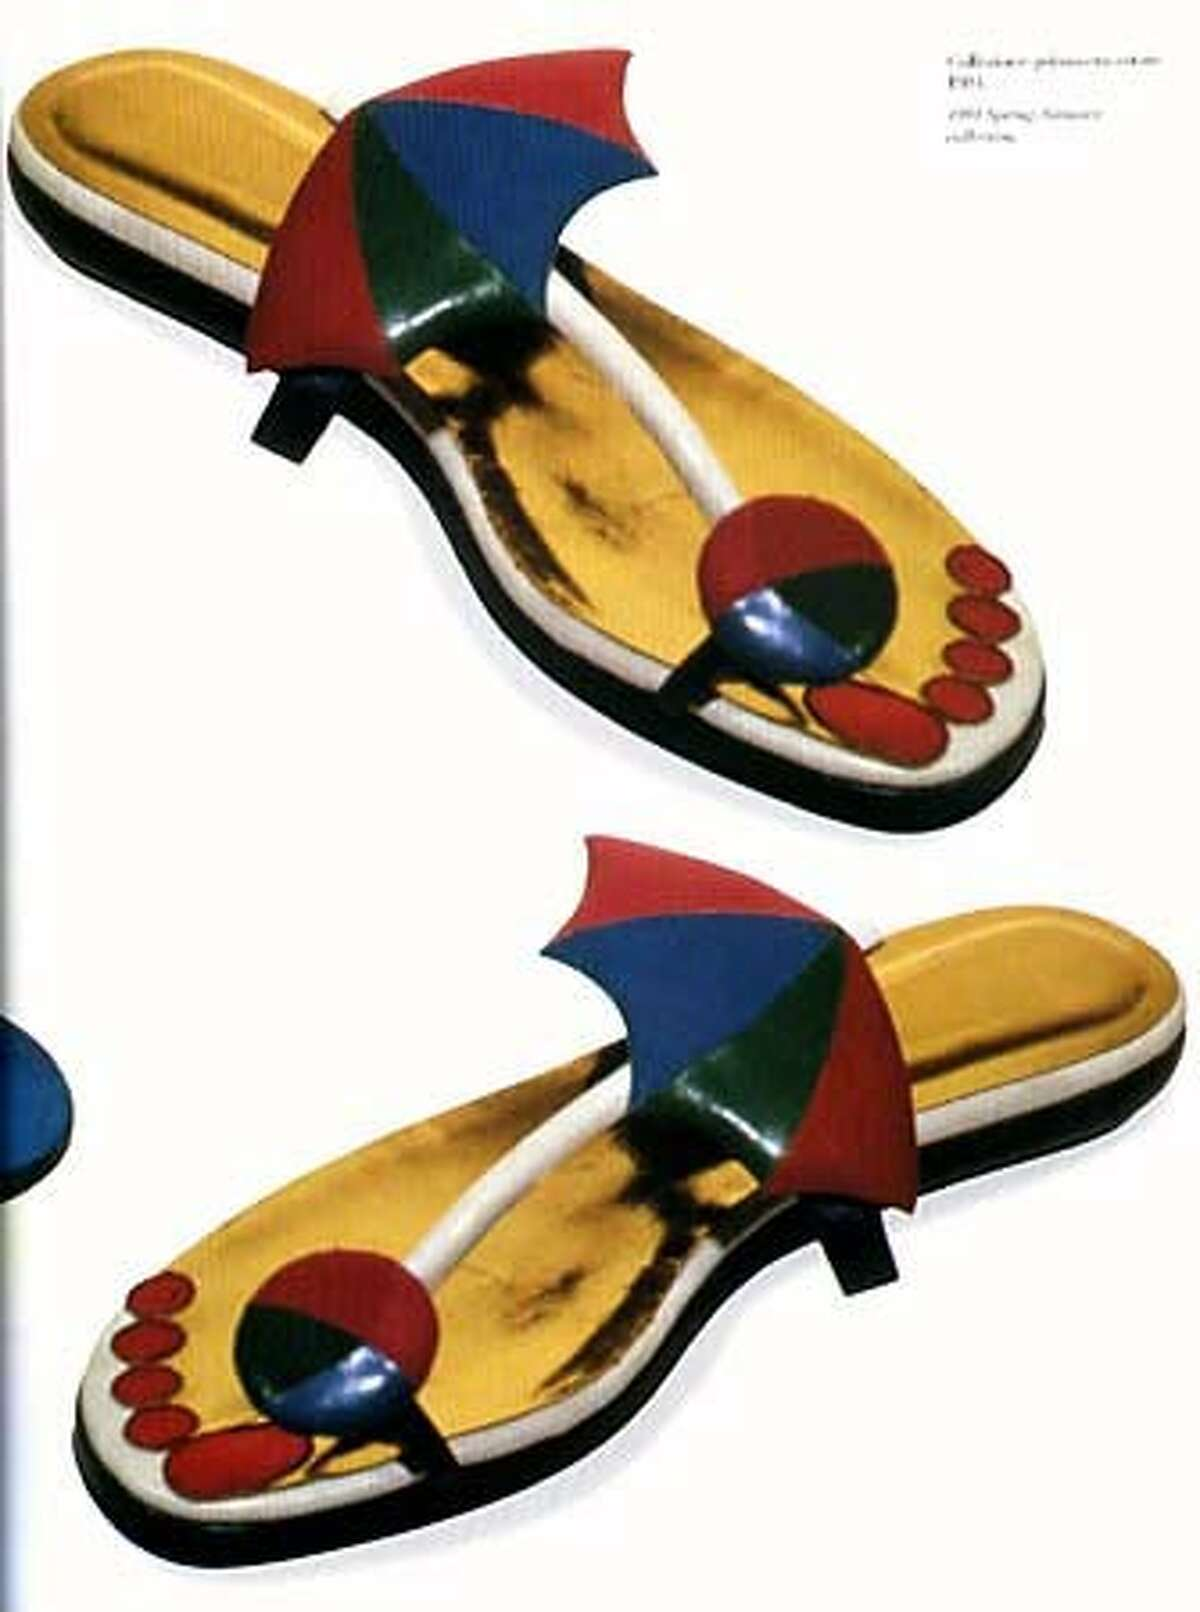 Pfister's beach-umbrella sandals with trompe l'oeil red toenails were part of his spring-summer collection in 1984